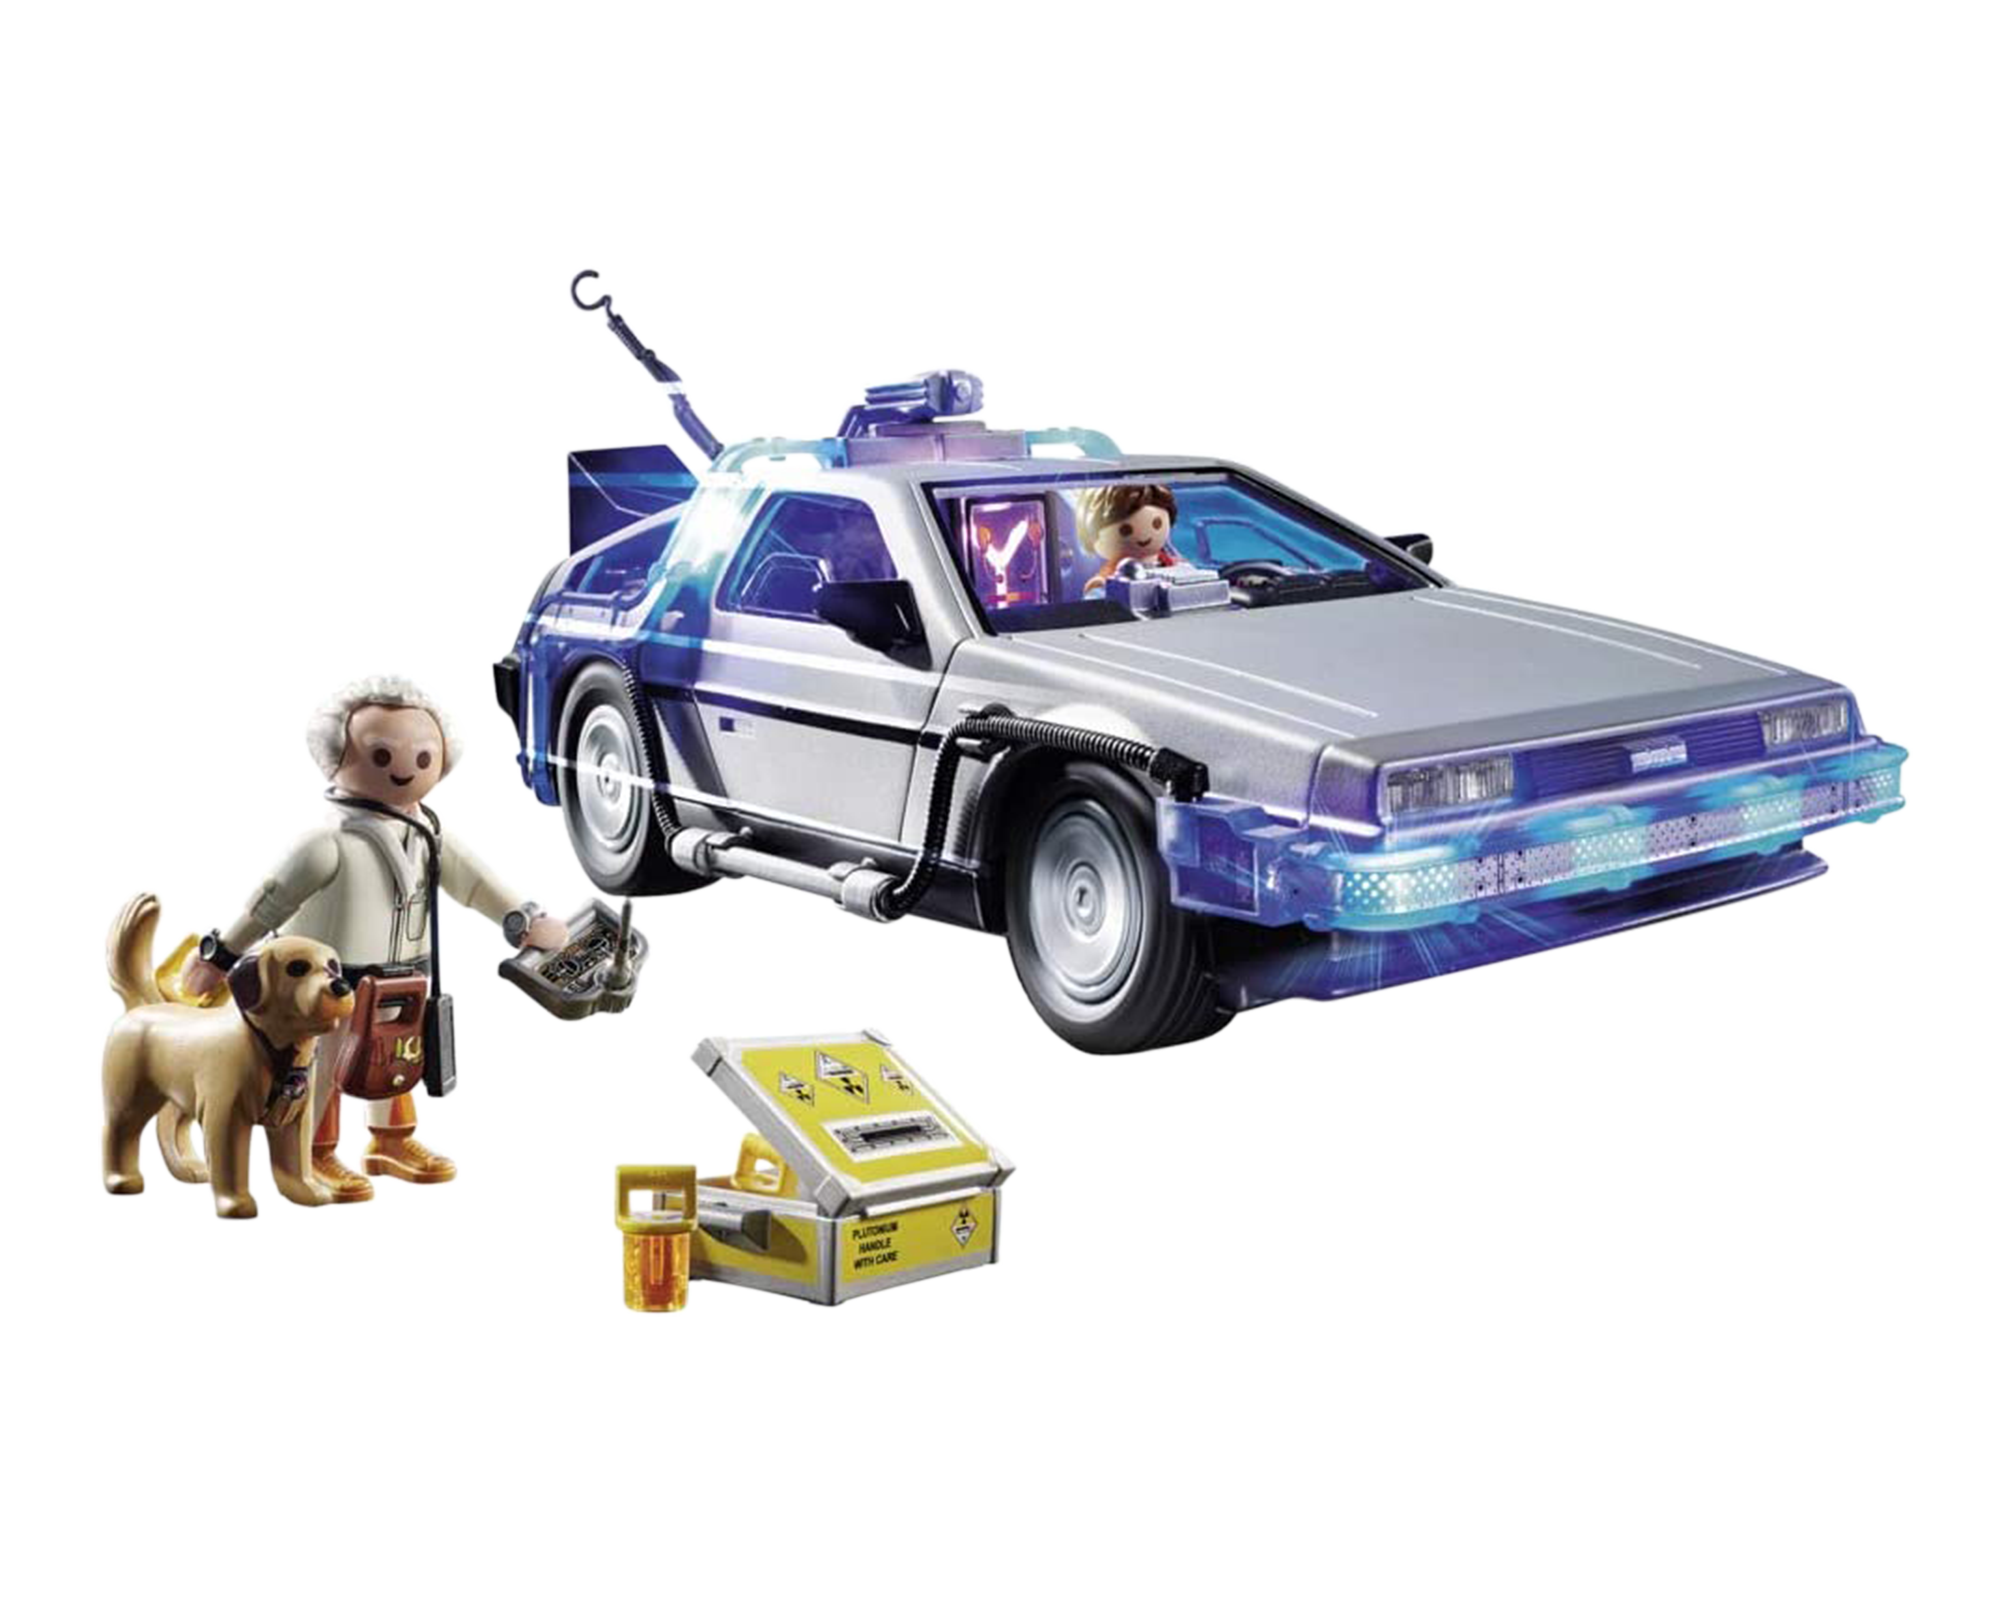 playmobil-back-to-the-future©-de-lorean-toy,-currently-priced-at-£39.99.png